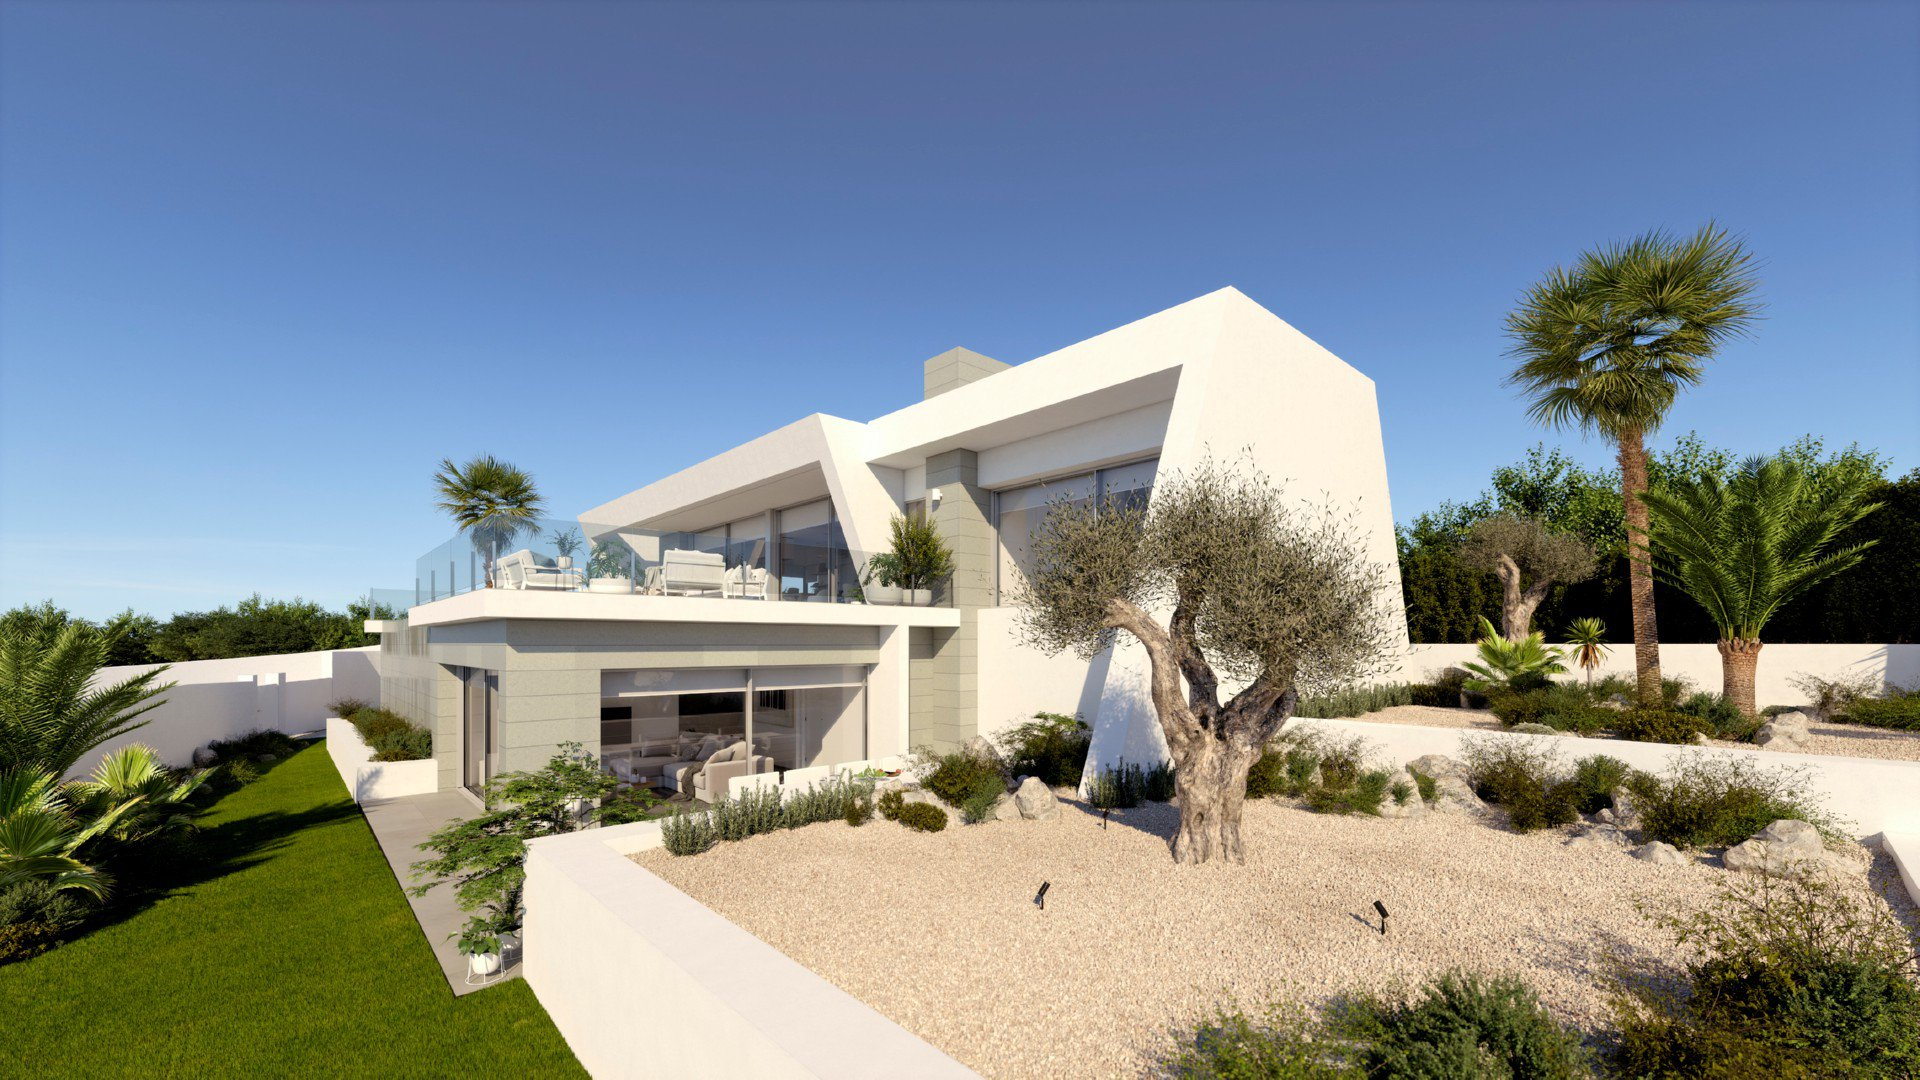 Villa in an exclusive area on Cumbre del Sol